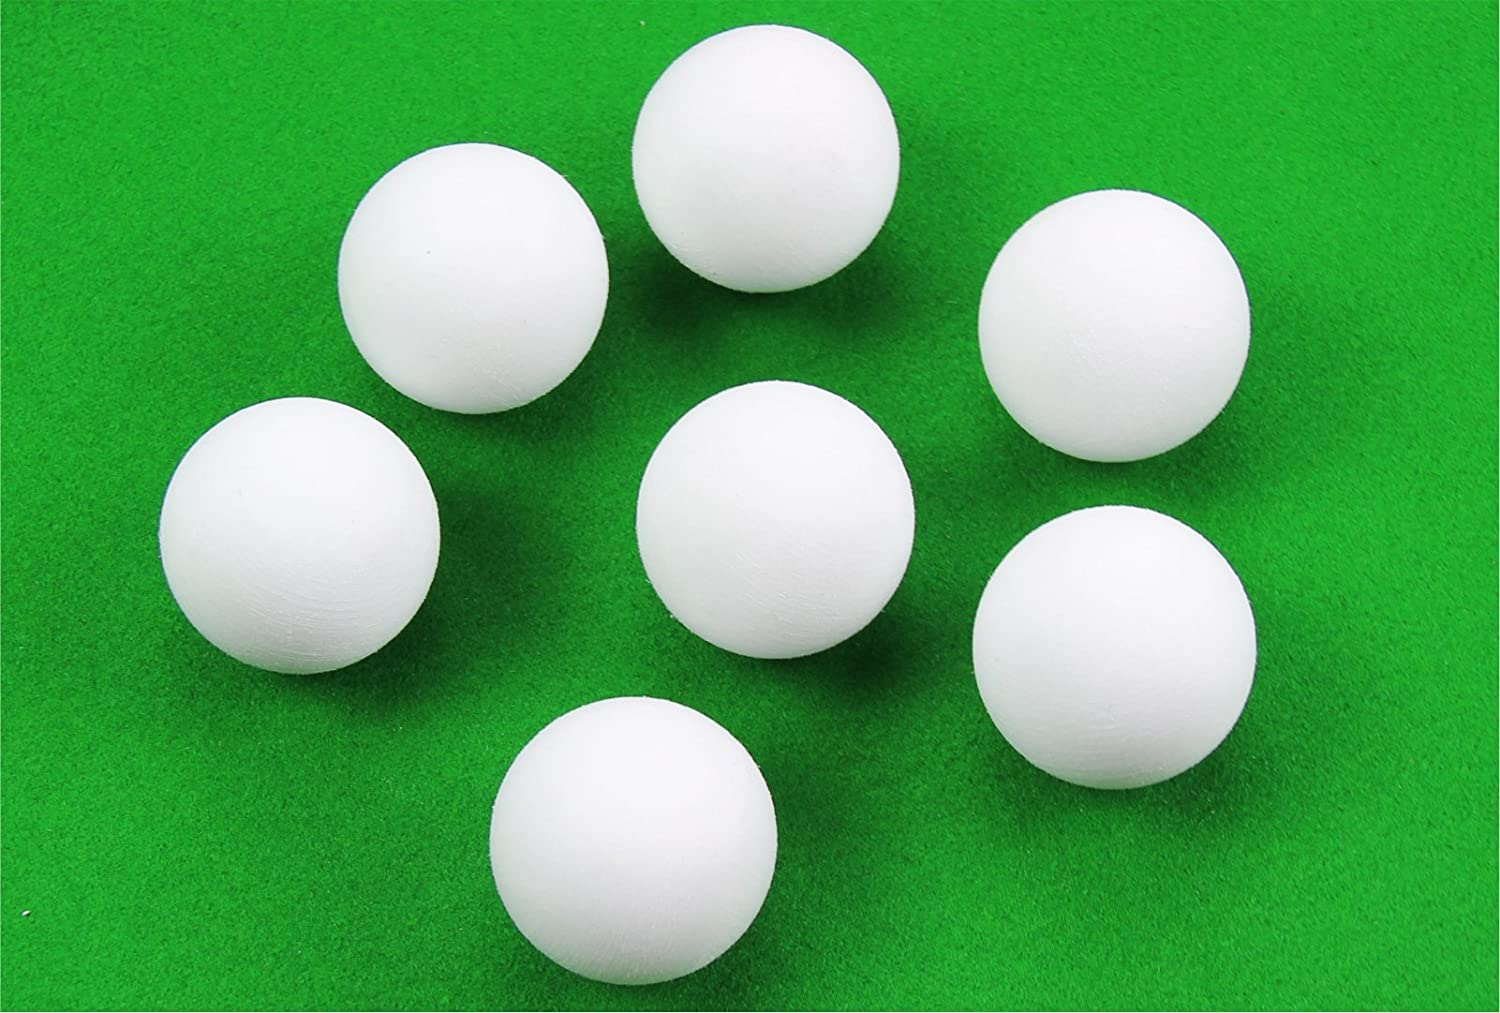 3 x 36mm SOLID WHITE SCUFFED Football Table Balls With Rubber Grip Coating! Unbranded